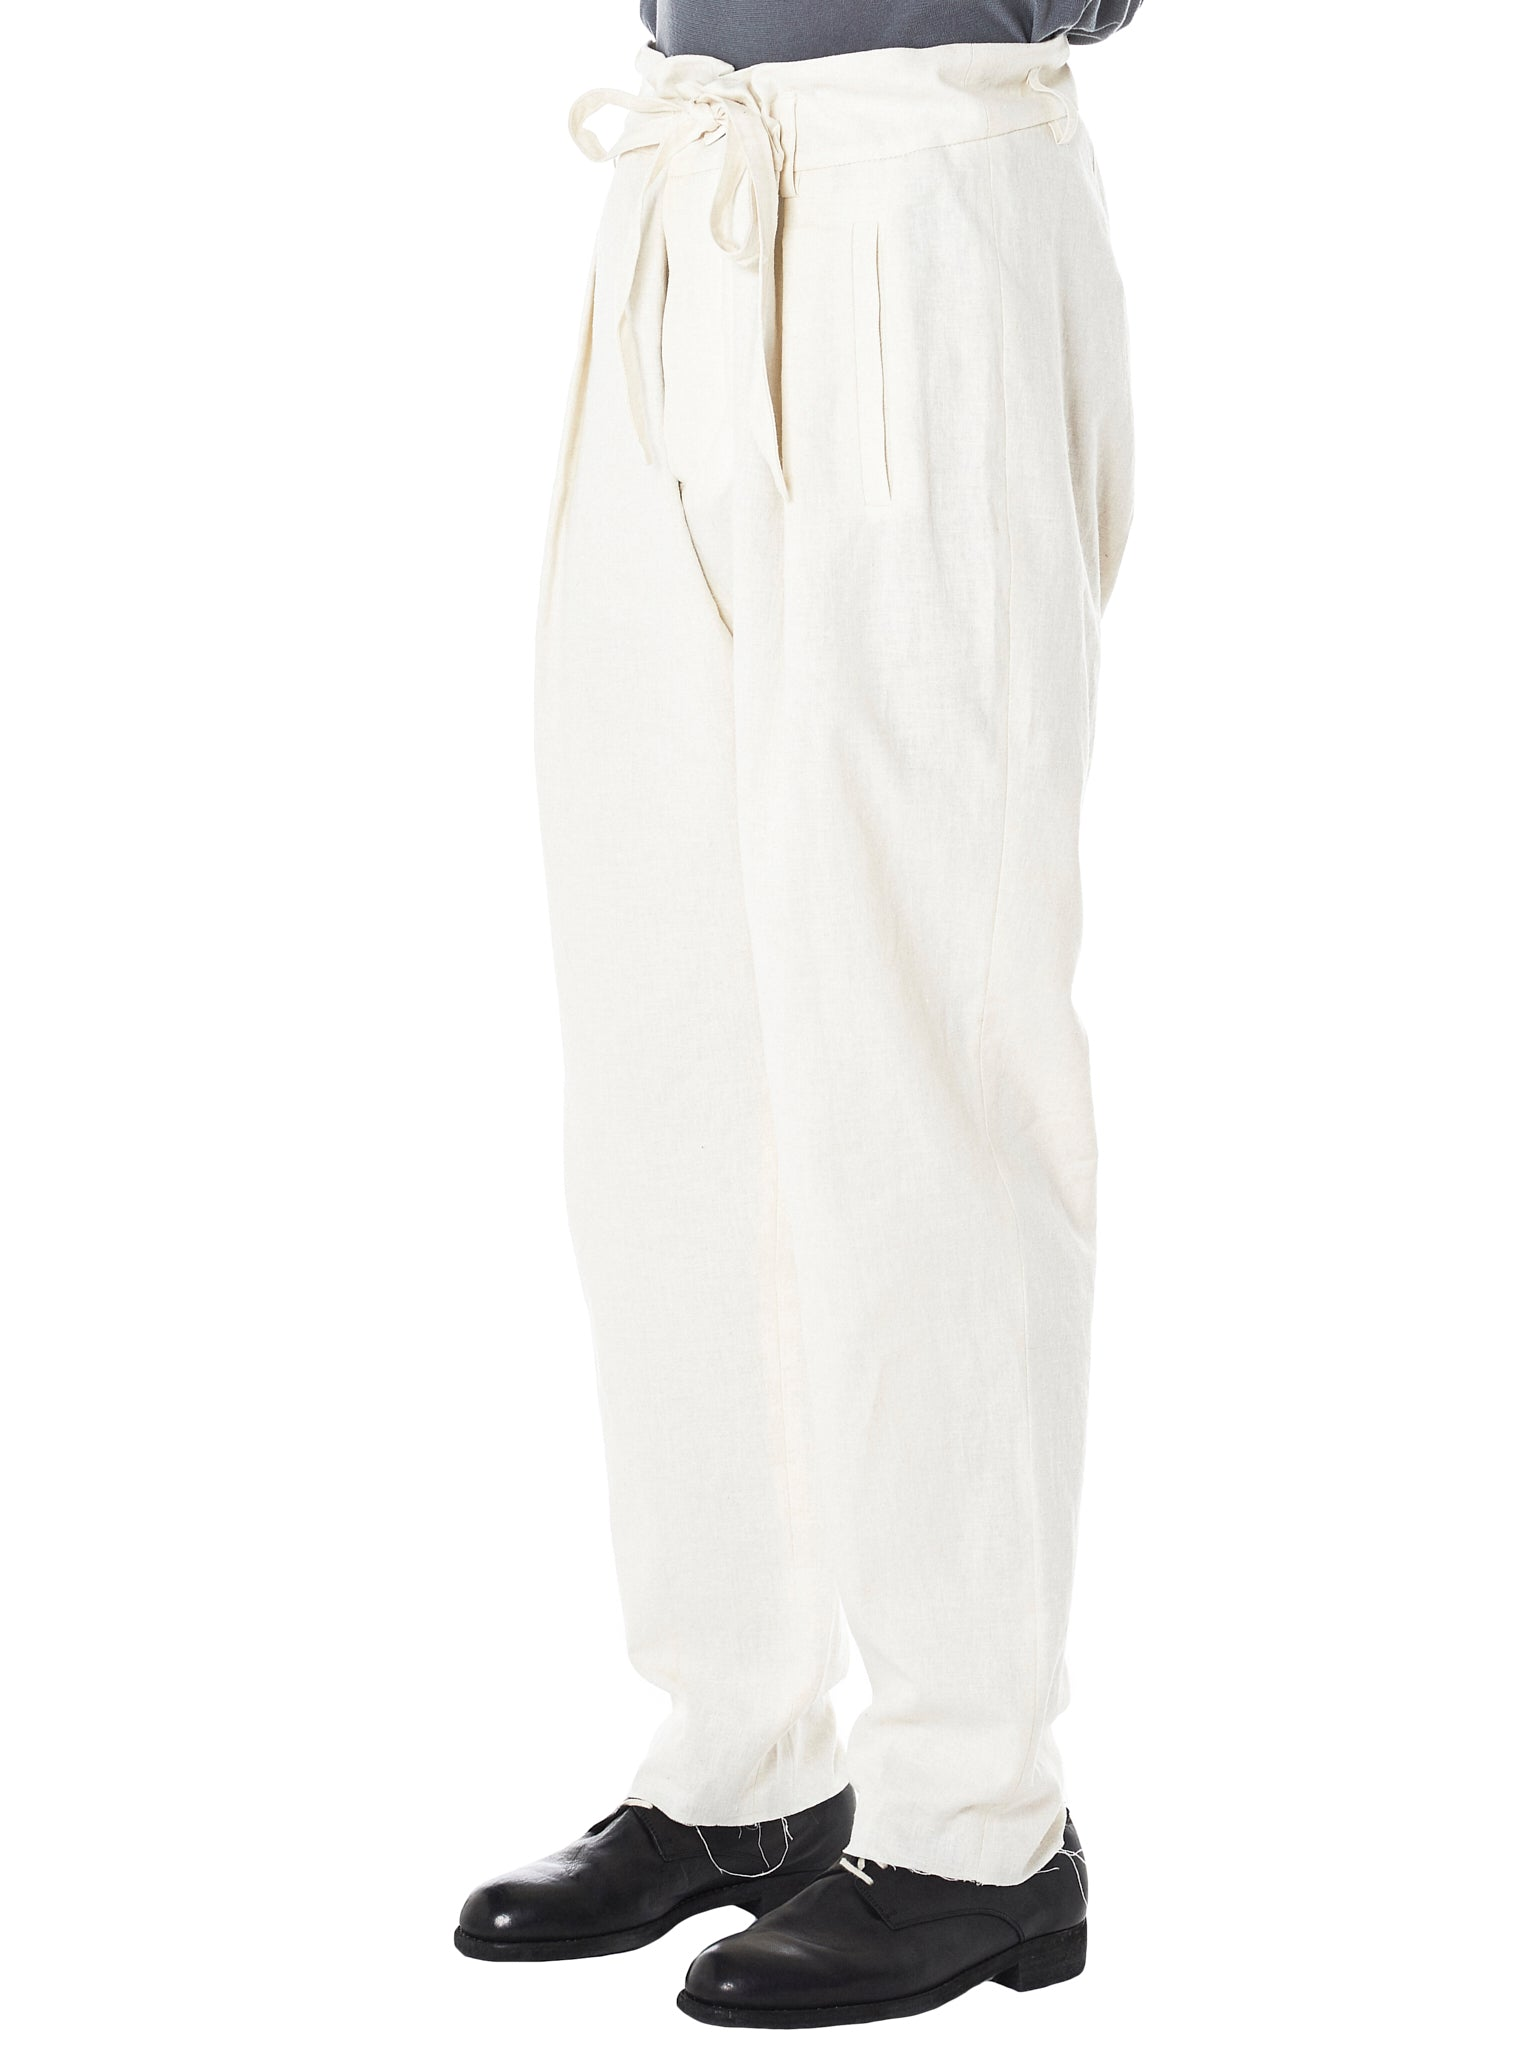 'REIMS' Raw Trousers (REIMS-1352-WHITE)